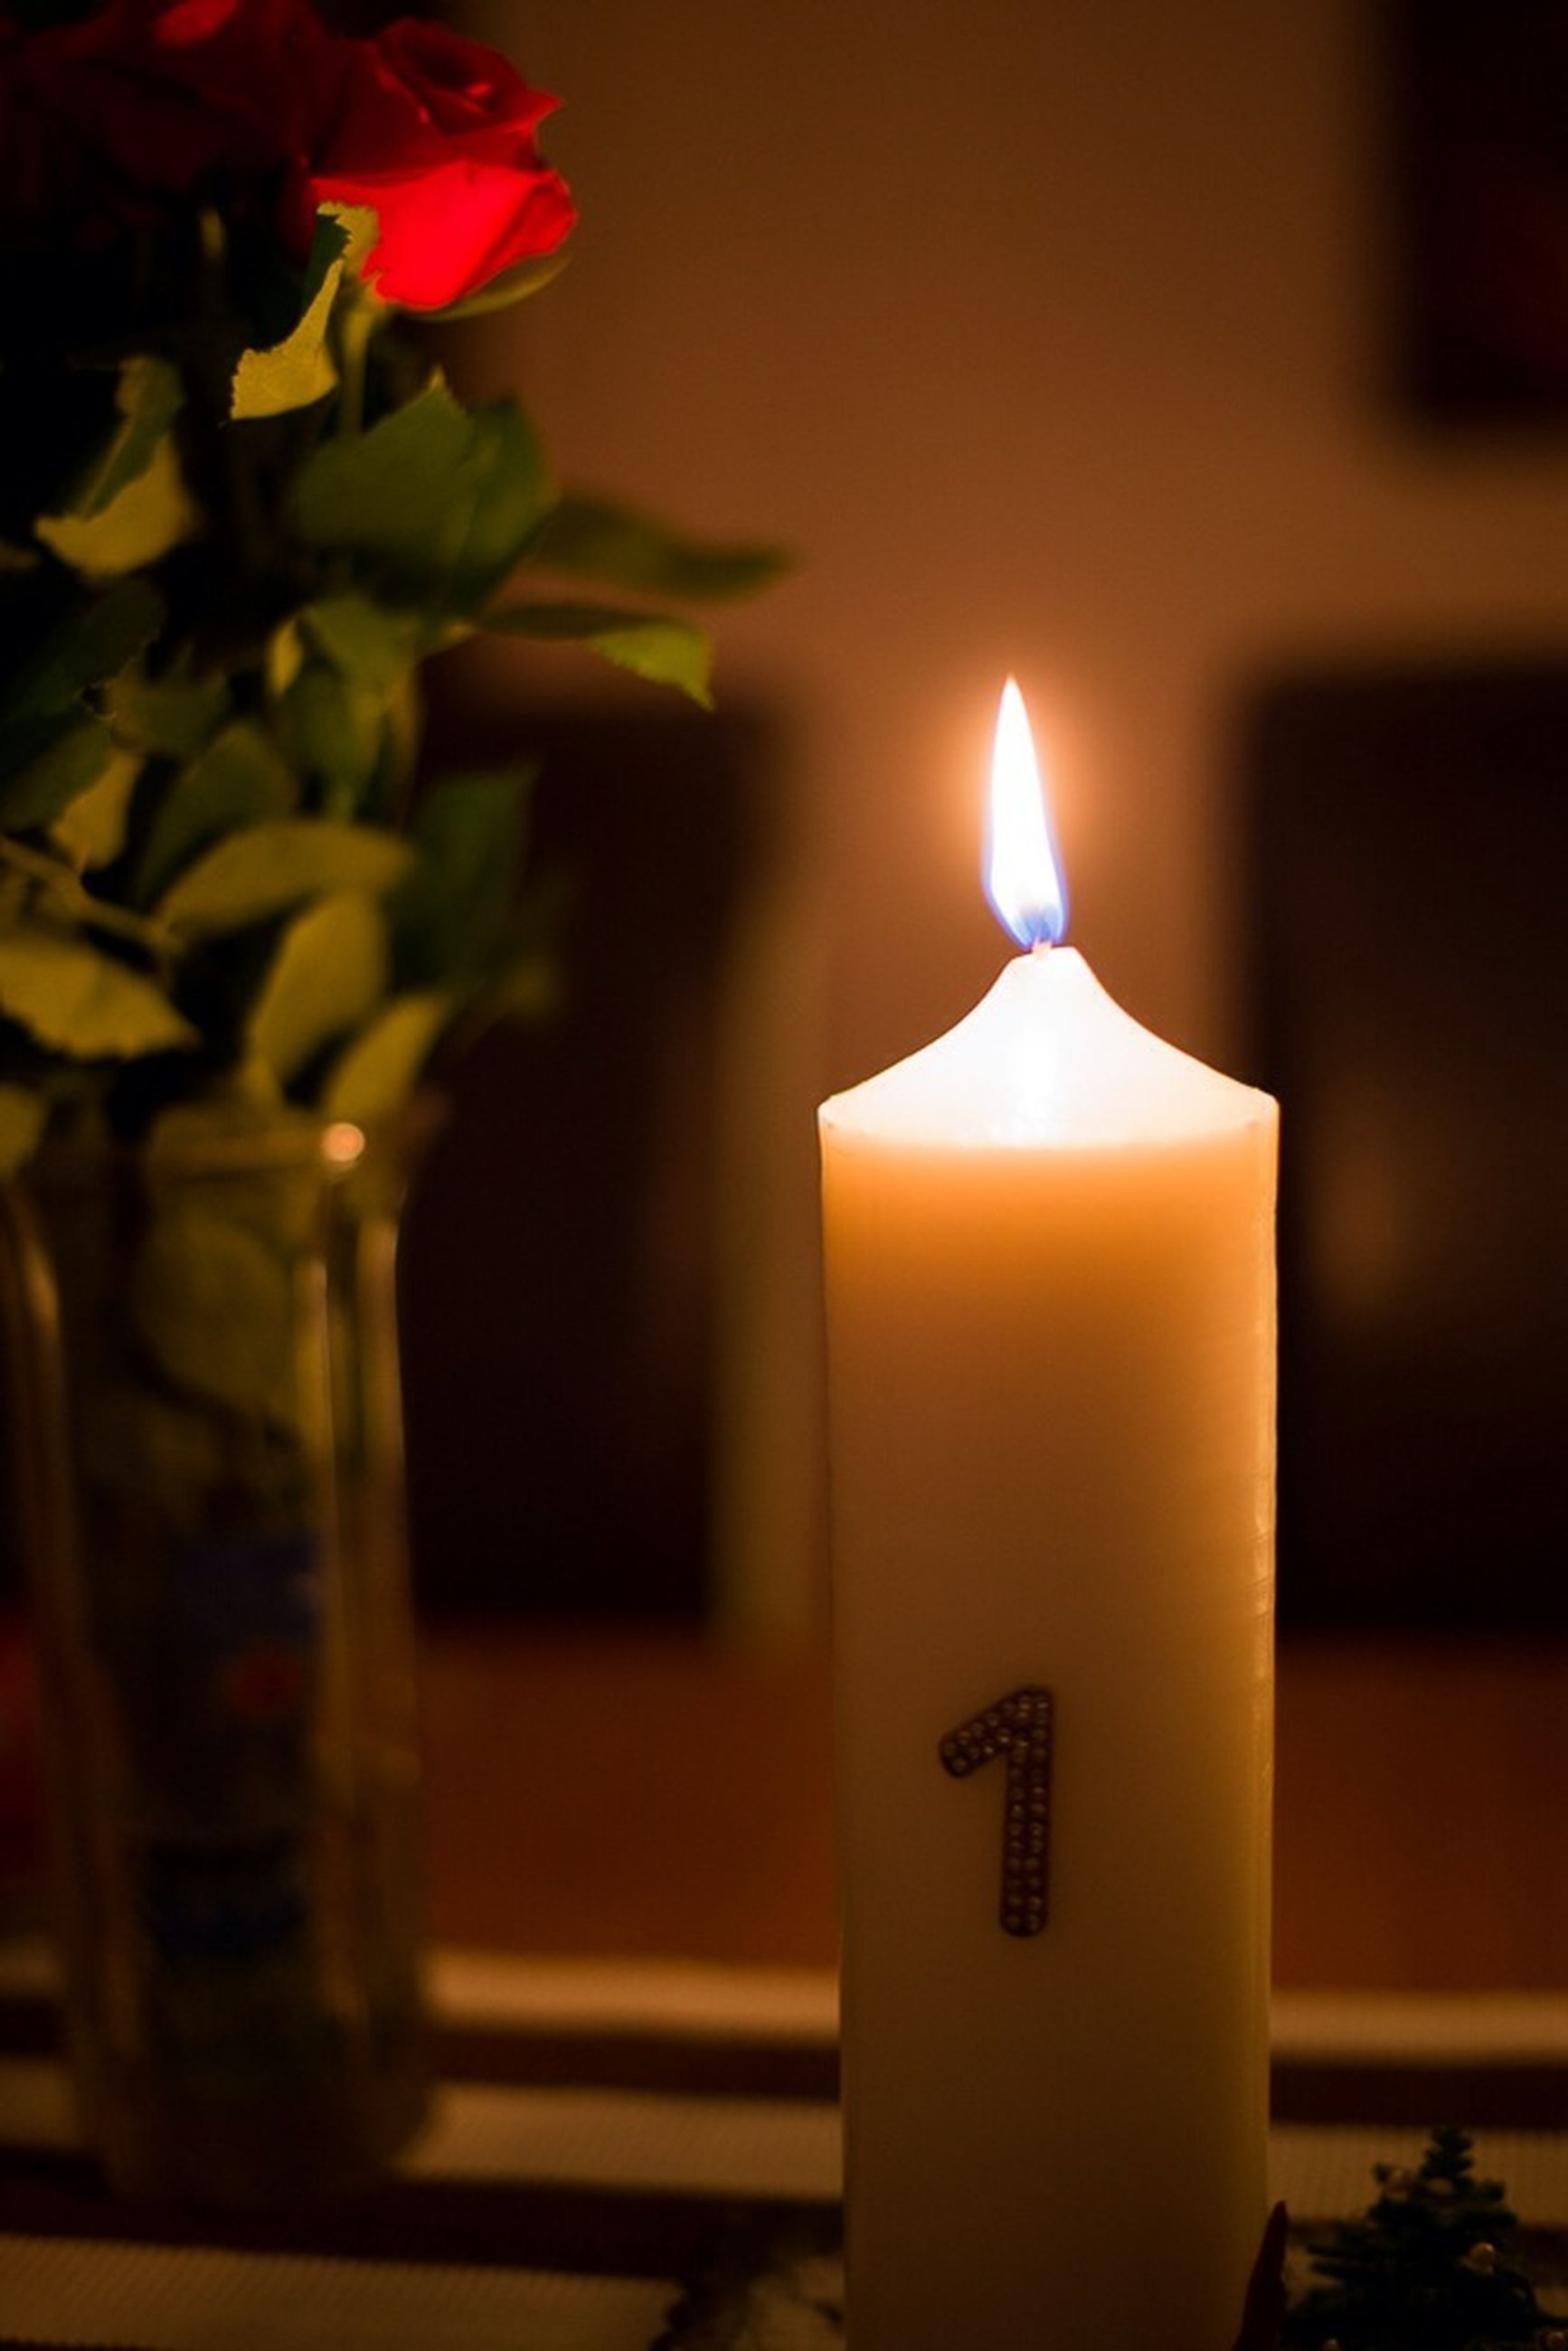 flame, candle, burning, illuminated, indoors, glowing, fire - natural phenomenon, heat - temperature, lit, close-up, candlelight, religion, decoration, lighting equipment, spirituality, night, darkroom, light - natural phenomenon, focus on foreground, selective focus